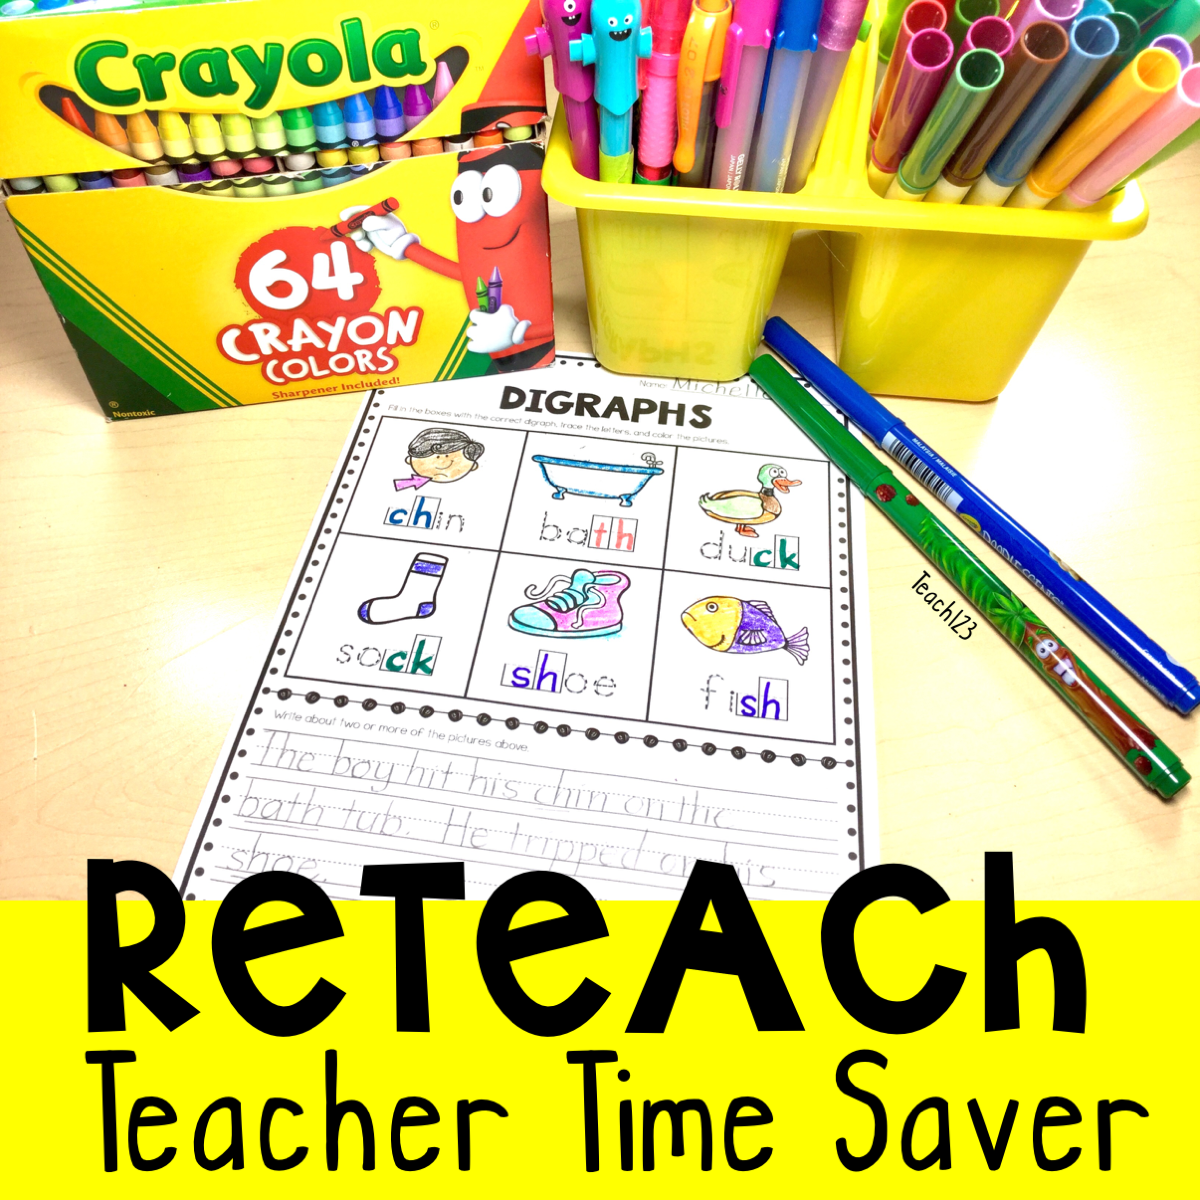 Free Early Finisher Reteach Digraph Sight Words High Frequency Words